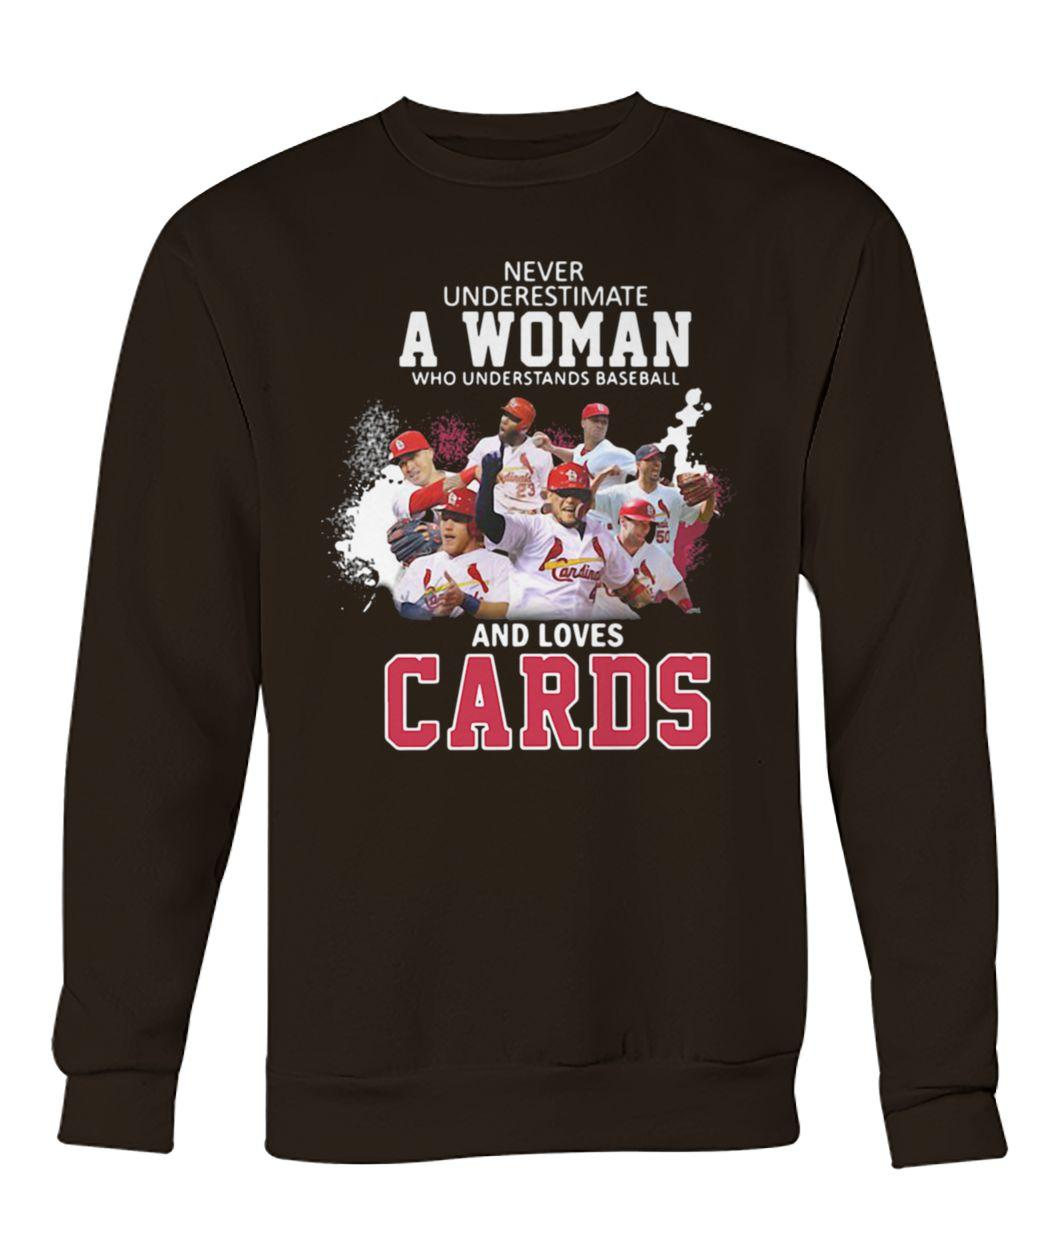 Never underestimate a woman who understands baseball and loves st louis cardinals sweatshirt